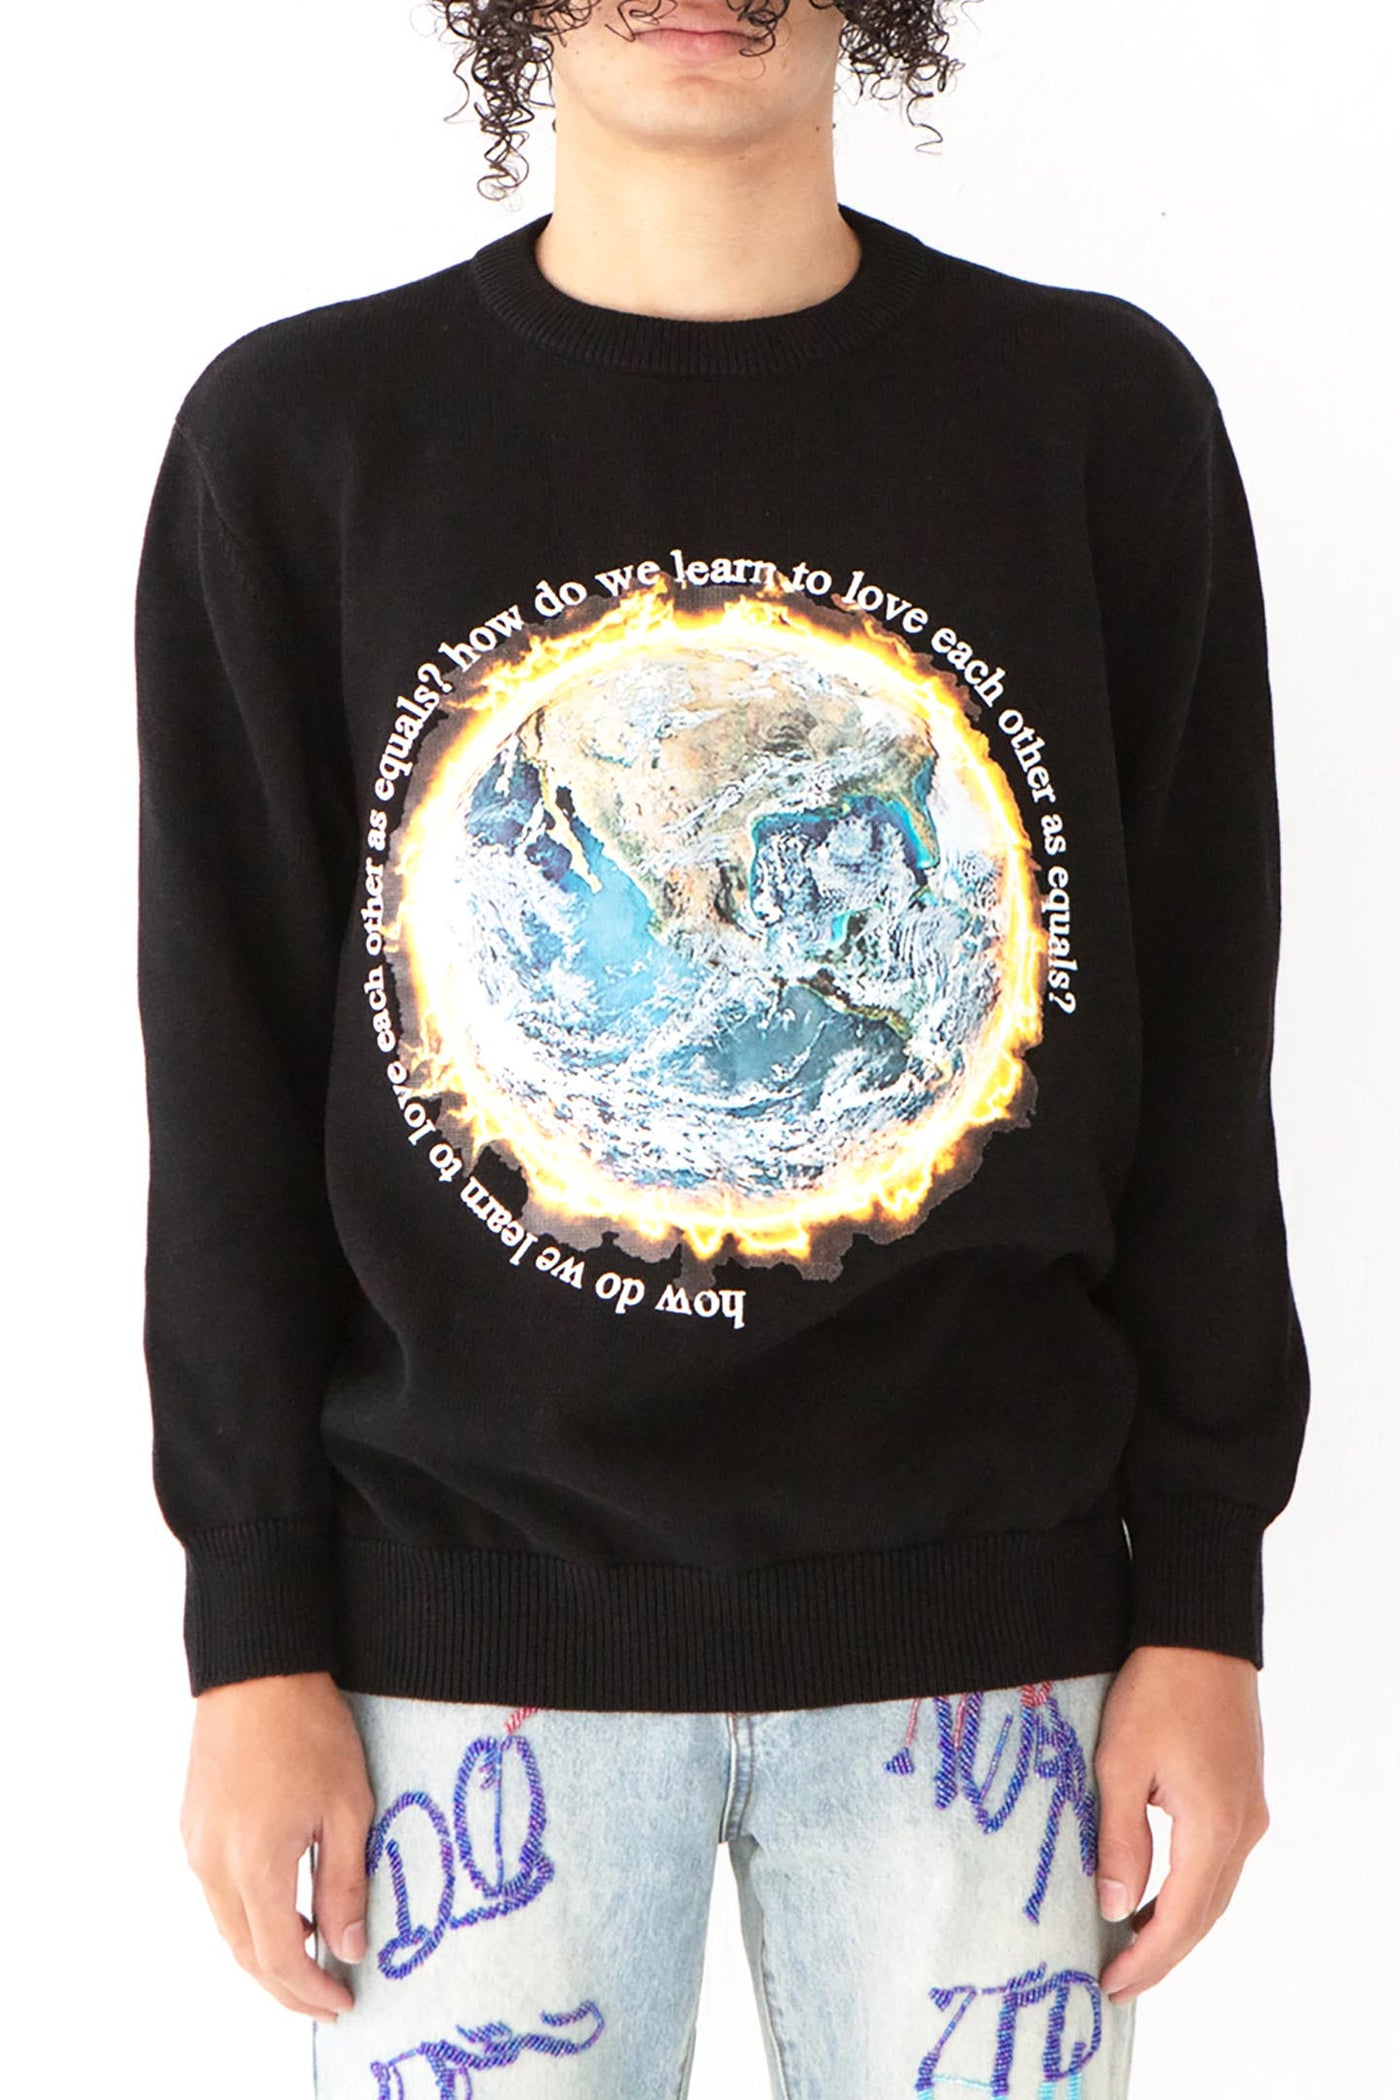 AS EQUALS KNIT CREWNECK